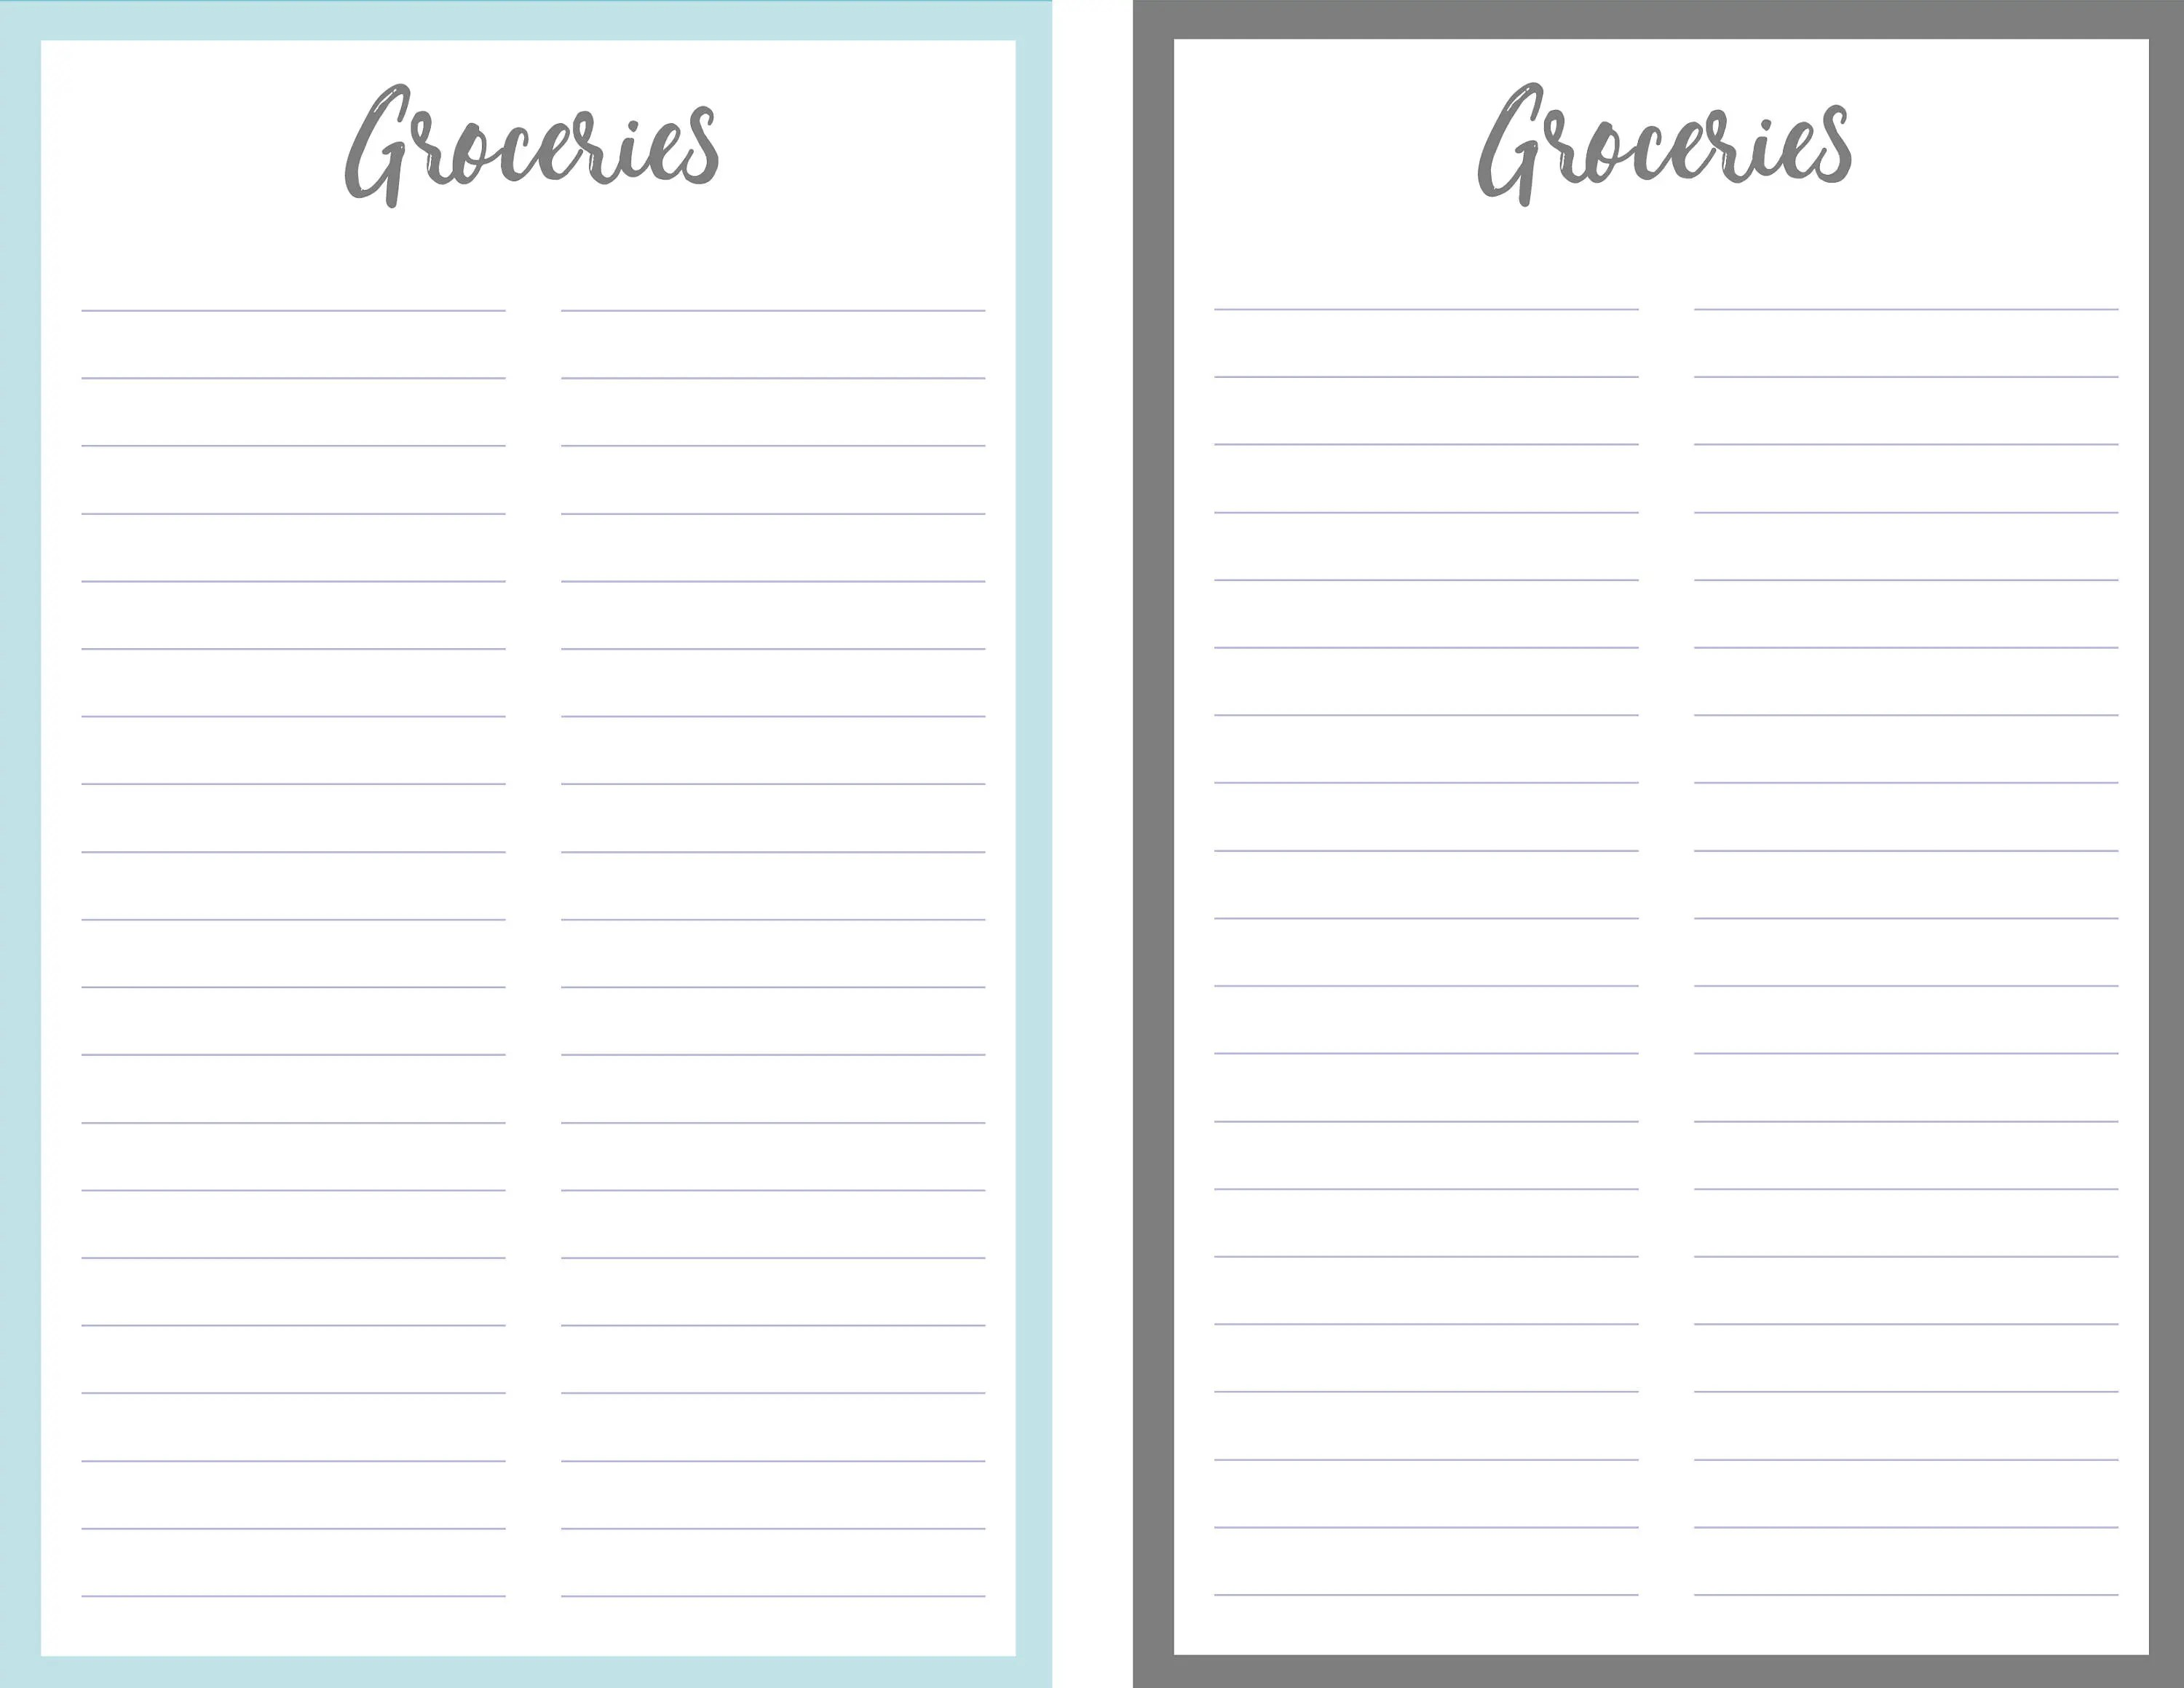 Grocery list Unique Grocery list PDF Instant Download Printable List  Shopping List - Keep Track of Foods to Buy for your Kitchen